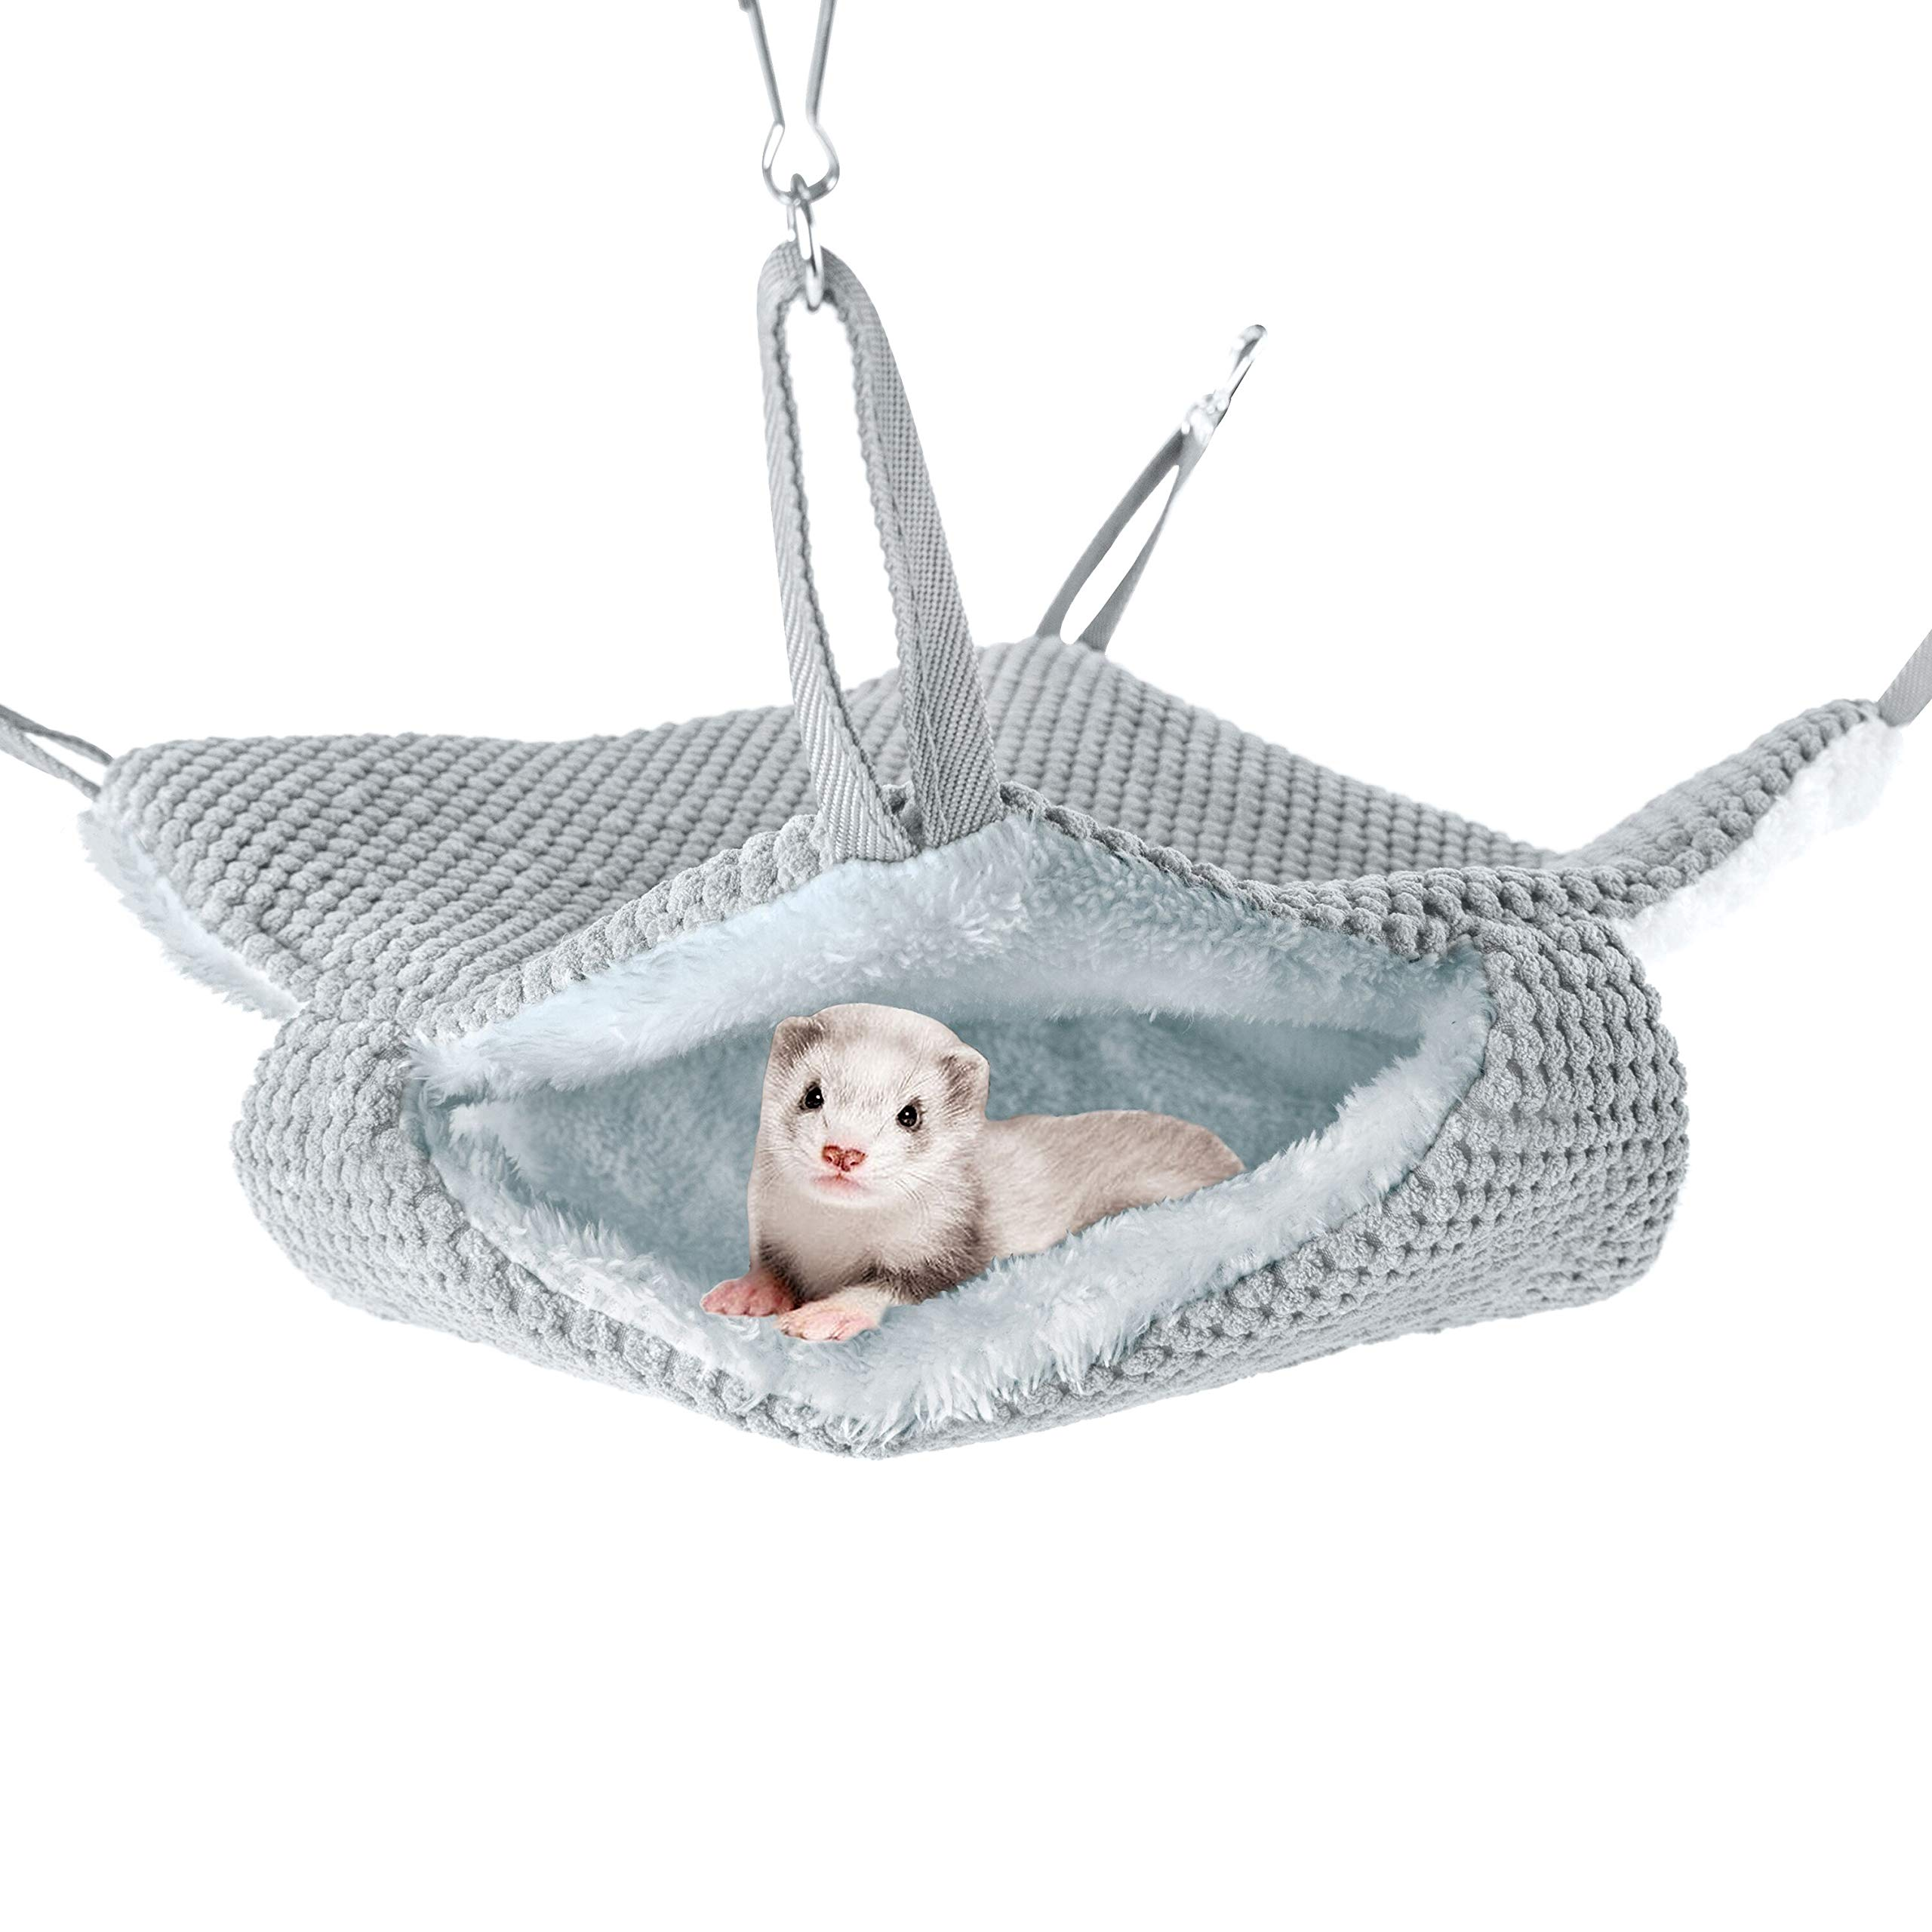 Niteangel Pet Hammock Swing Snuggle Sack for Ferret Rats Suger Glider Squirrels - Napping Bed Pocket (Grey) by Niteangel